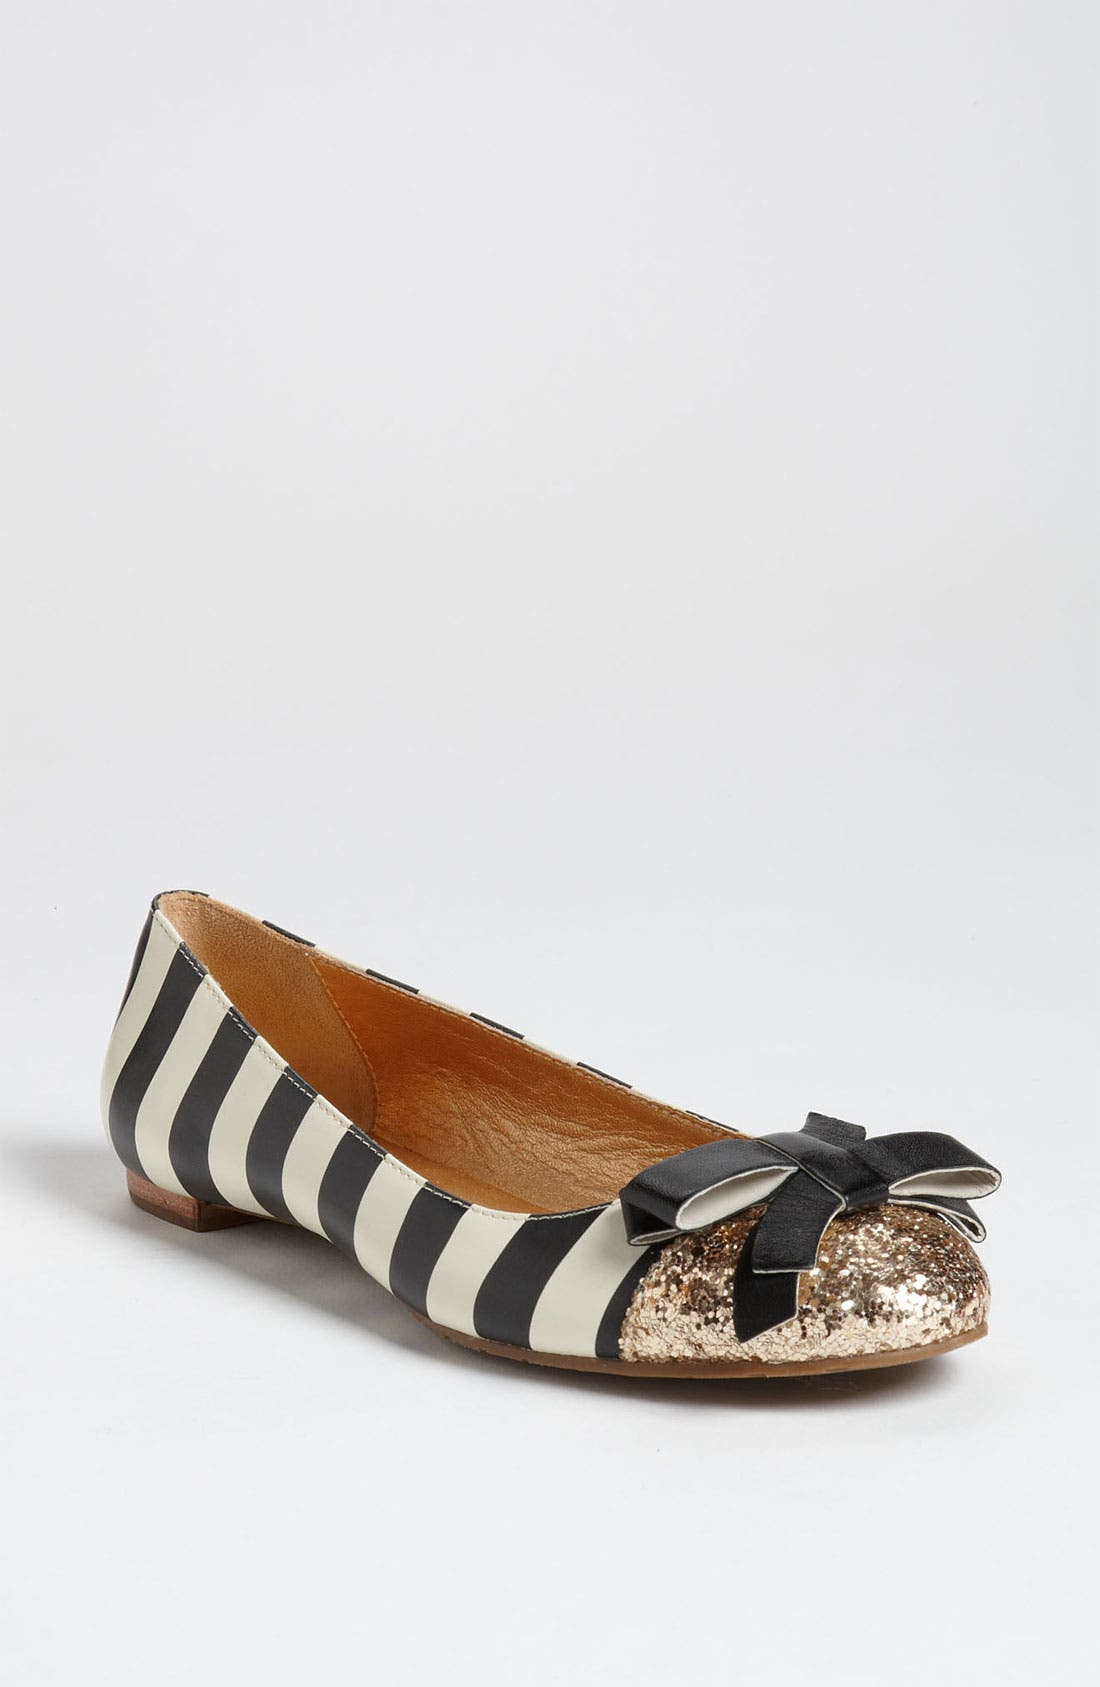 Alternate Image 1 Selected - kate spade new york 'trixie' flat